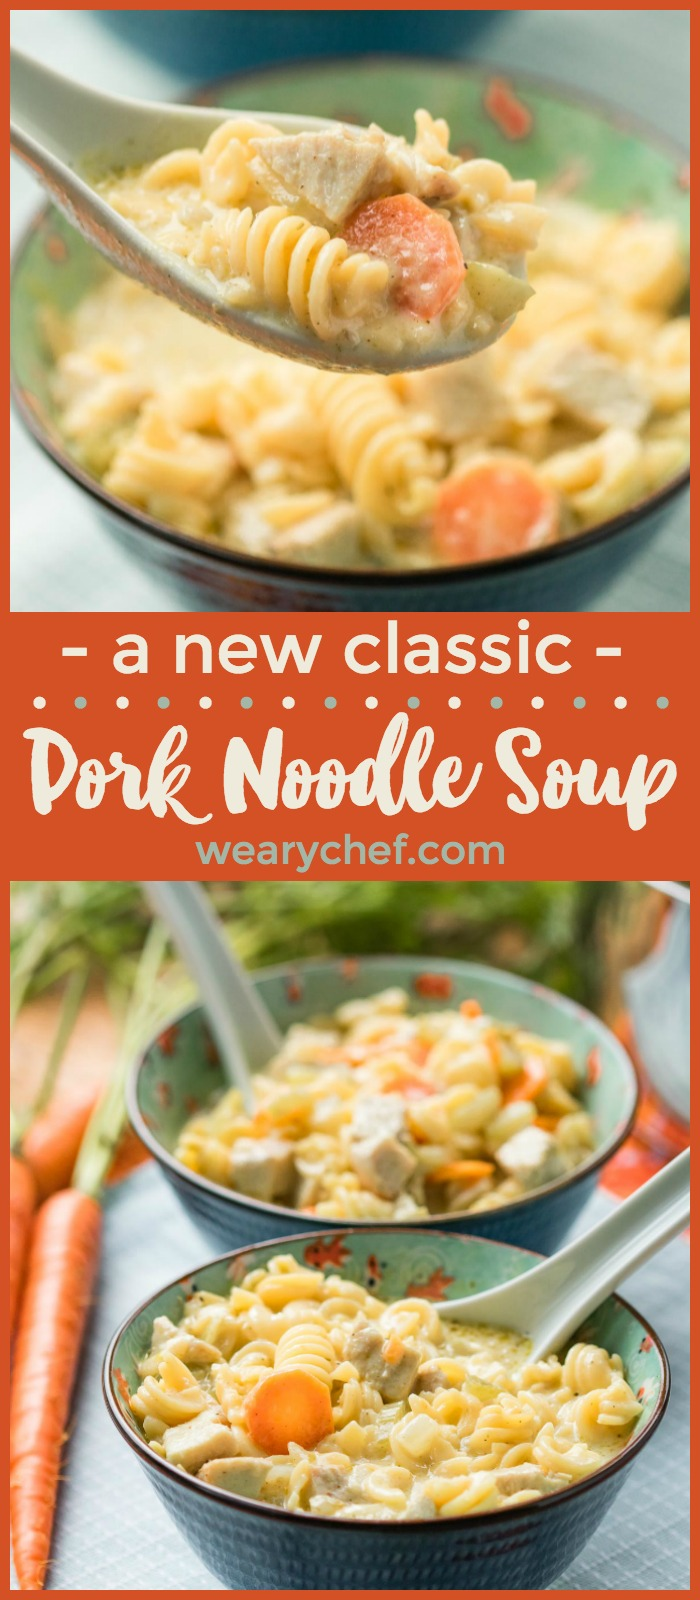 Got leftover pork tenderloin, roast, or ribs? This Pork Noodle Soup recipe is the very best way to turn last night's dinner into your new favorite comfort food!